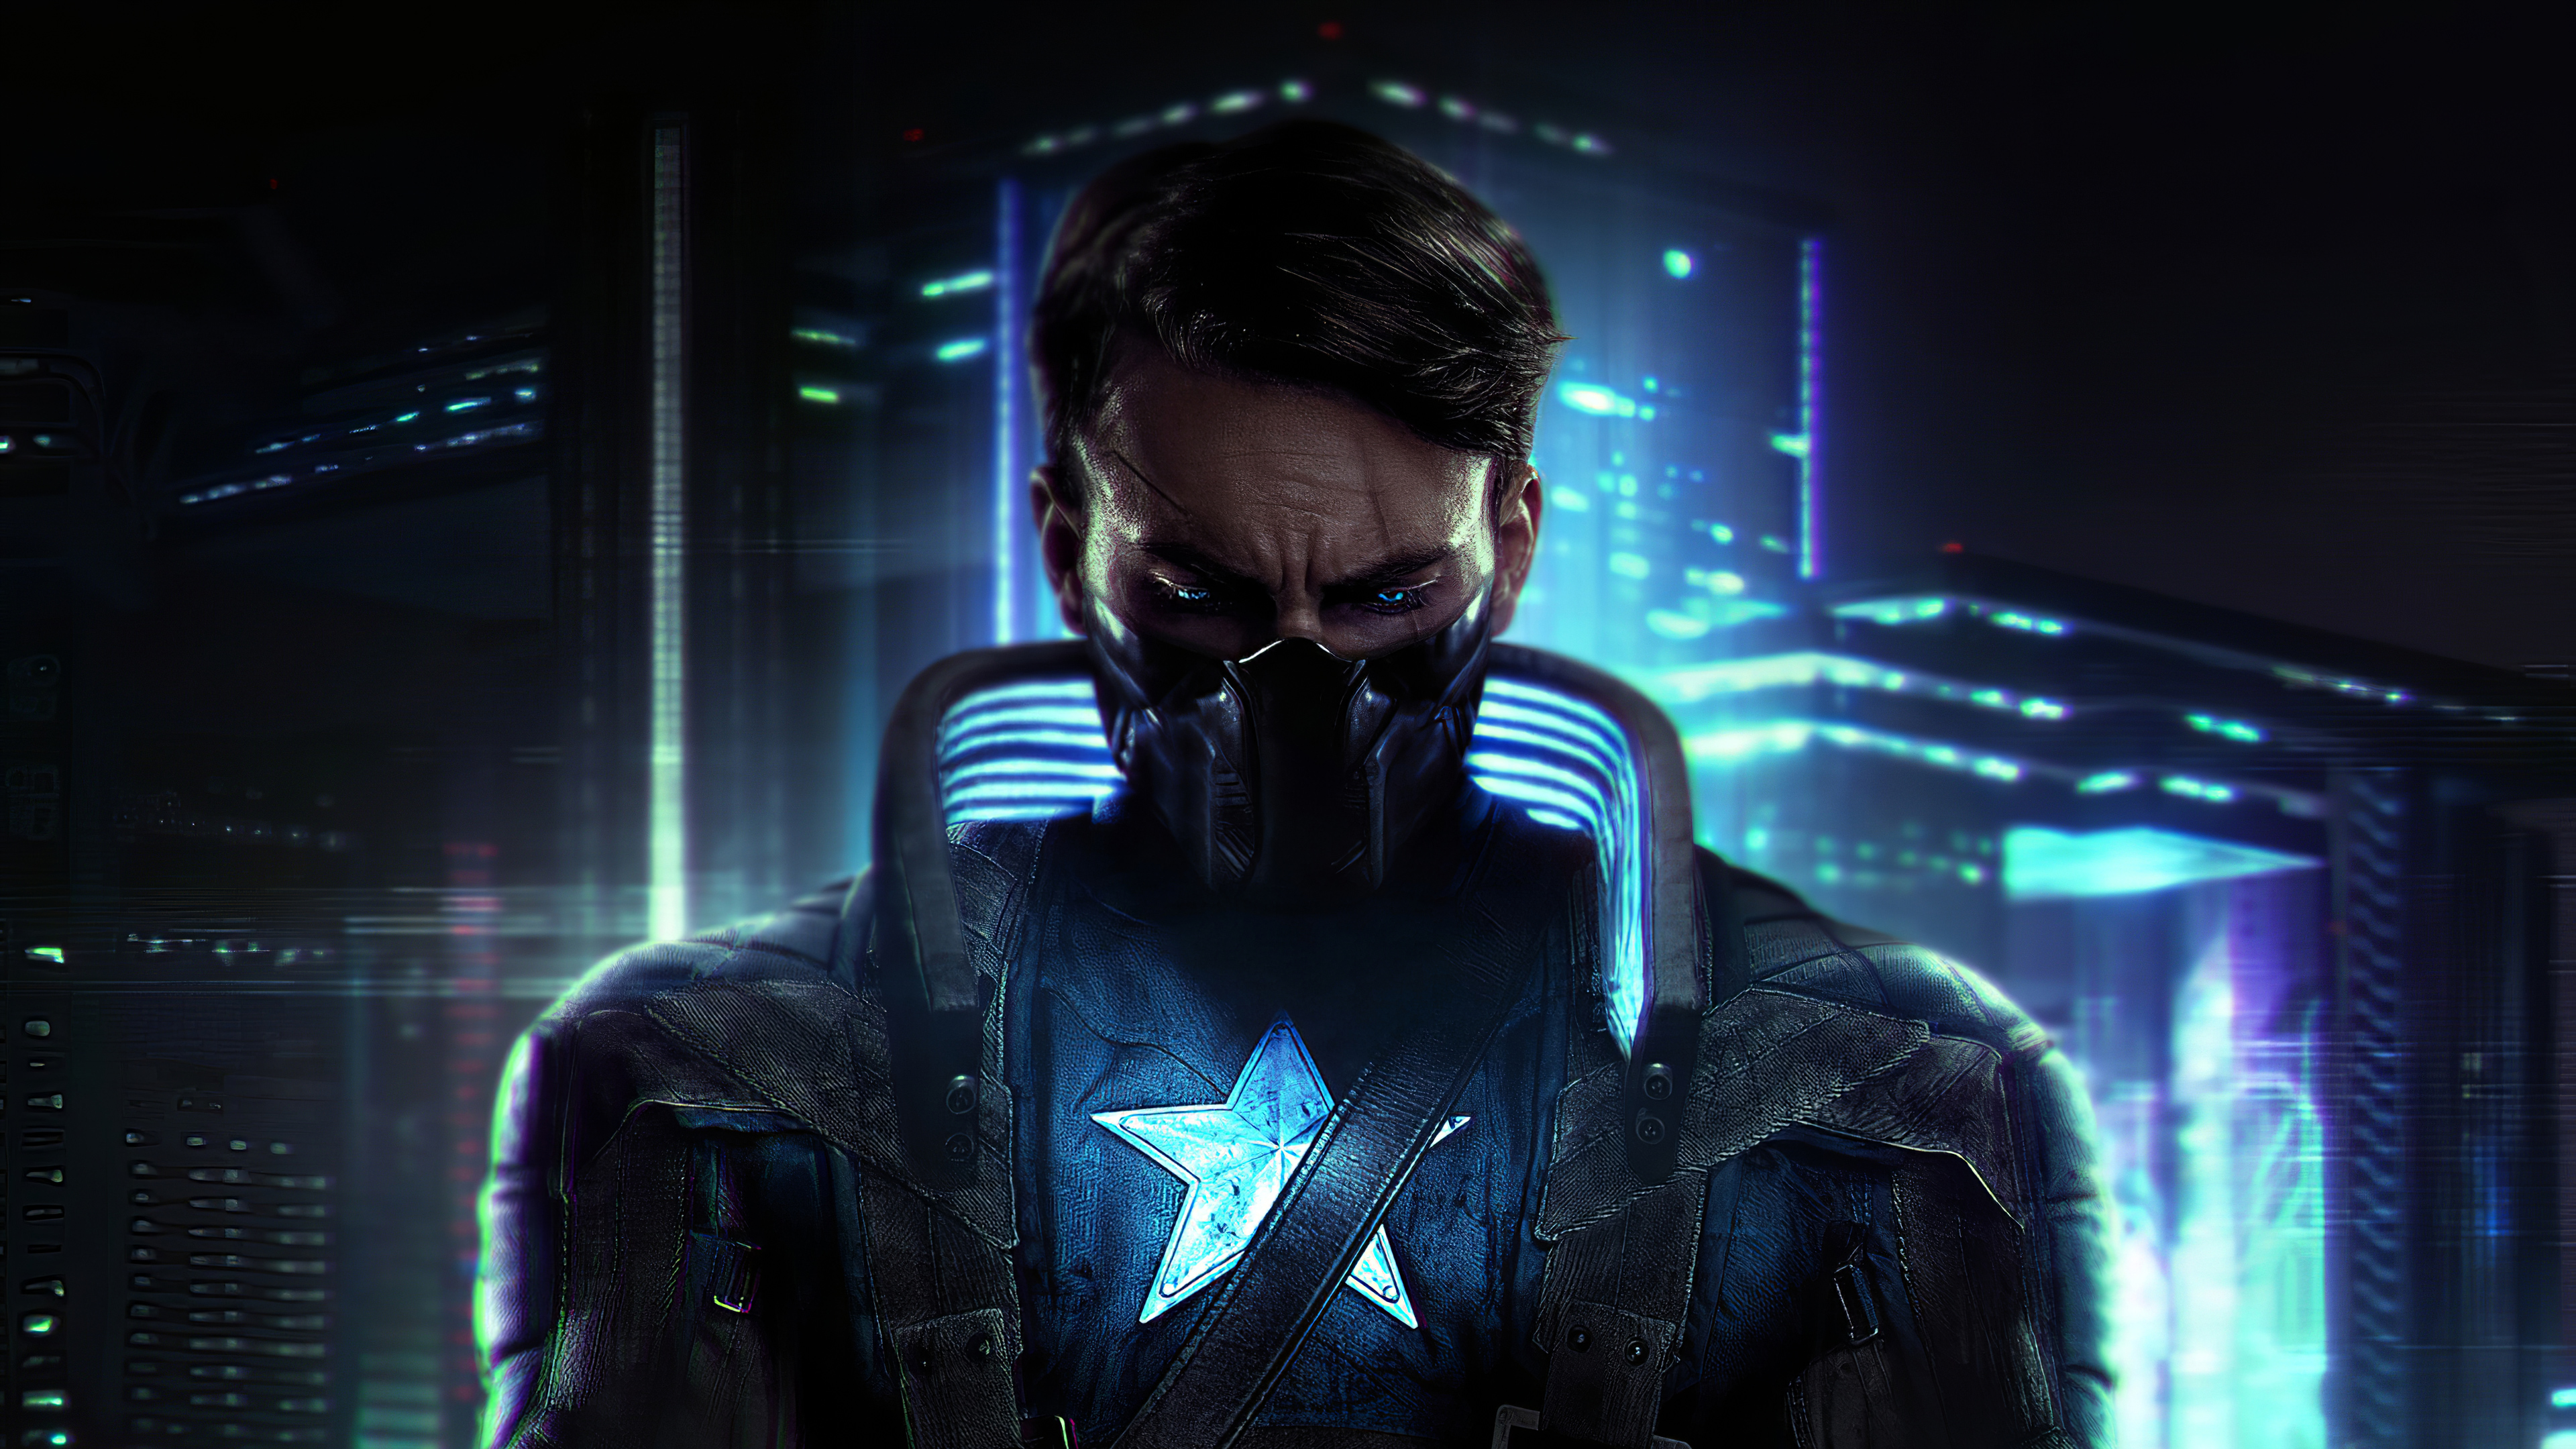 captain america cyberpunk 1581357409 - Captain America Cyberpunk - Captain America Cyberpunk wallpapers, Captain America Cyberpunk theme wallpapers 4k, Captain America Cyberpunk 4k wallpapers